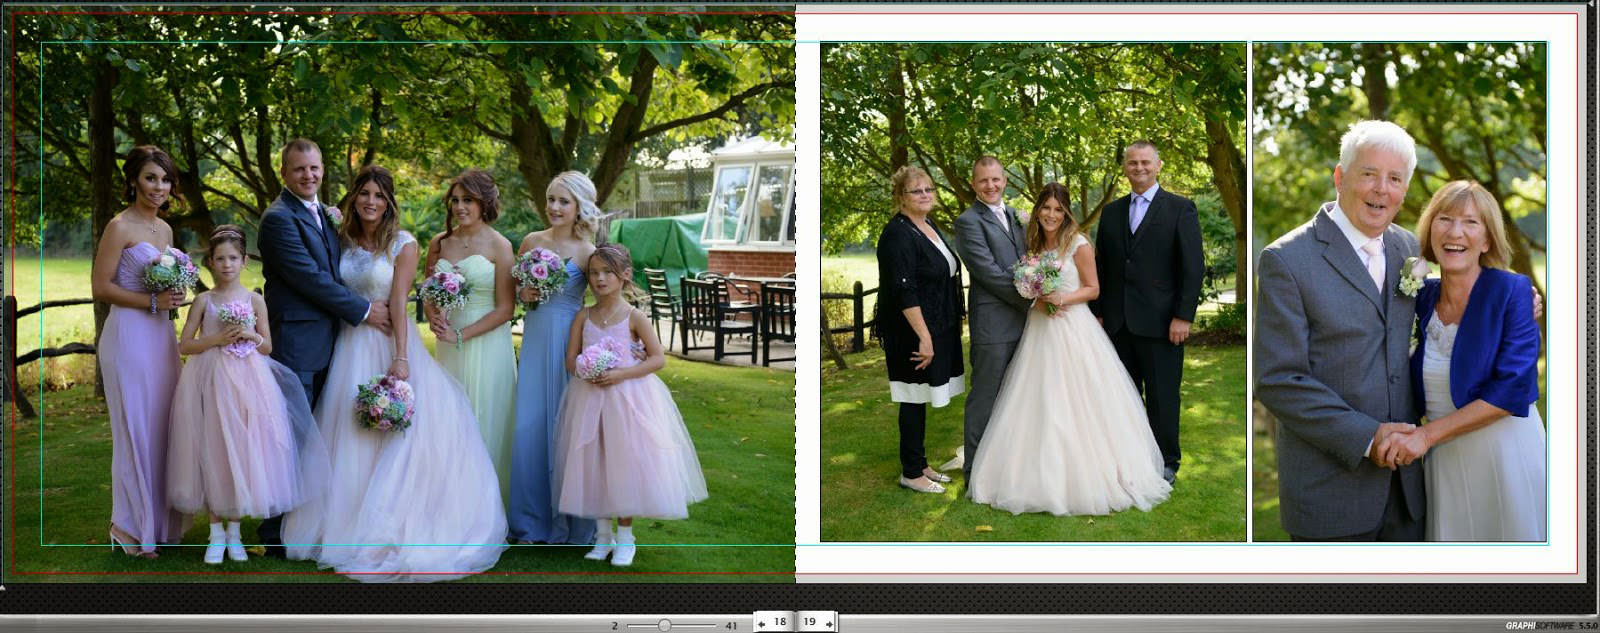 ali-gaudion-chichester-wedding-photographer-graphistudio-wedding-album-design-009